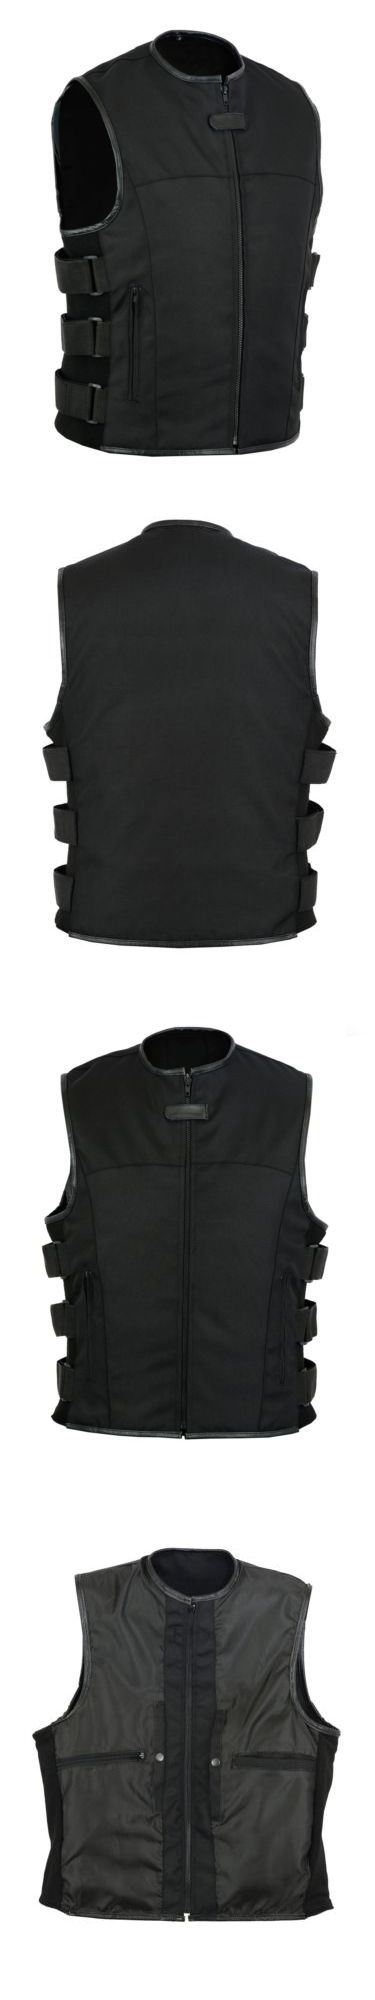 Vests 15691: Men S Motorcycle Biker Black Textile Tactical Swat Vest W Concealed Pockets -> BUY IT NOW ONLY: $42.99 on eBay!